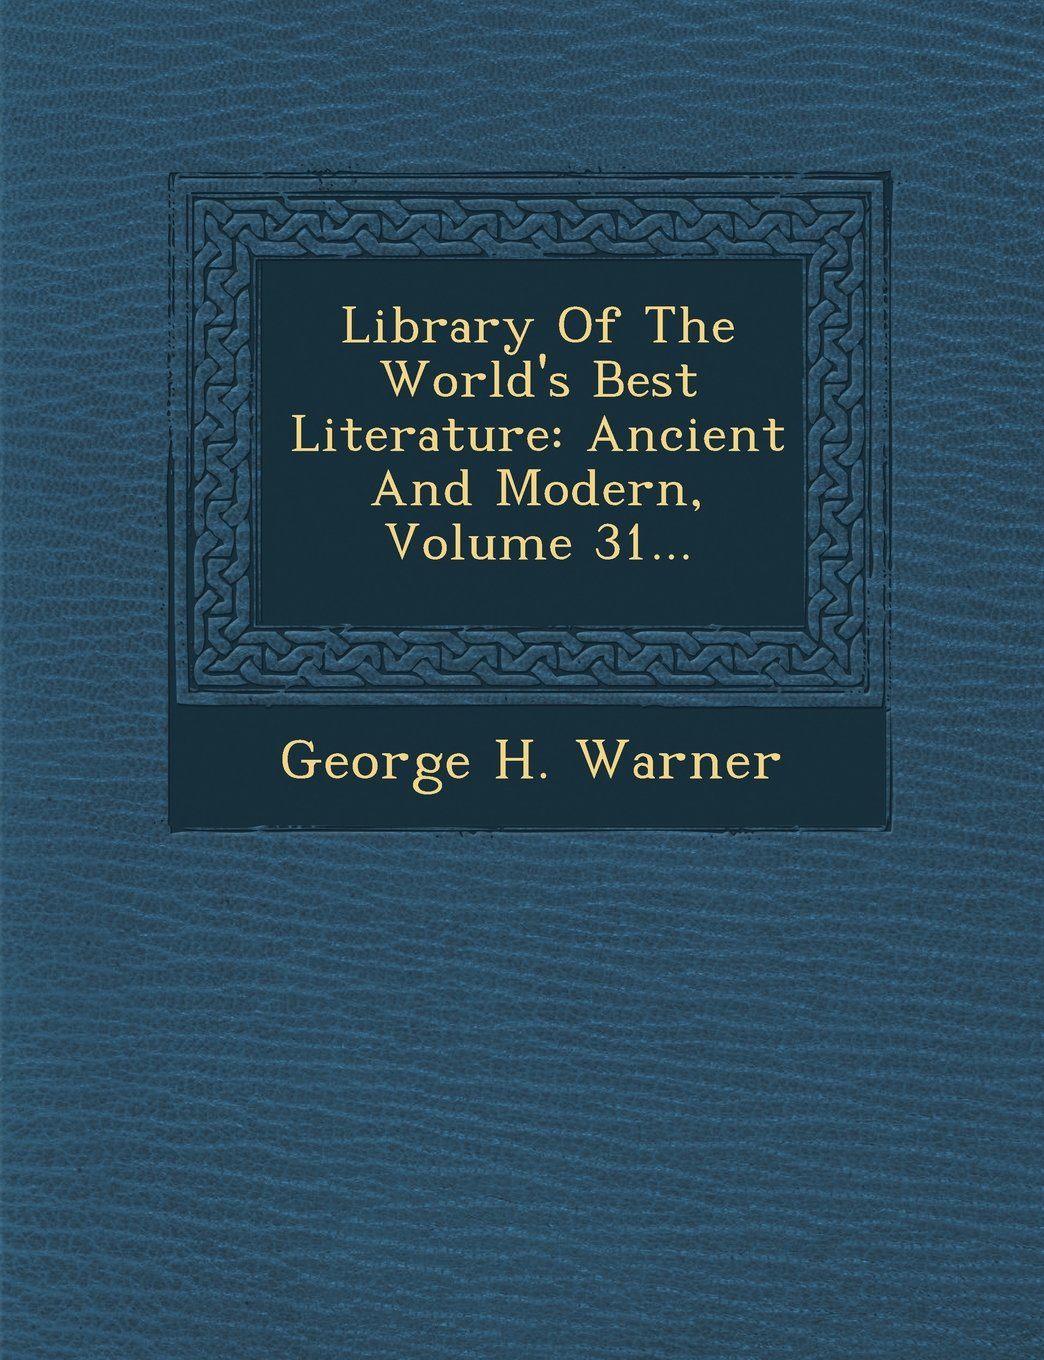 Library Of The World's Best Literature: Ancient And Modern, Volume 31... pdf